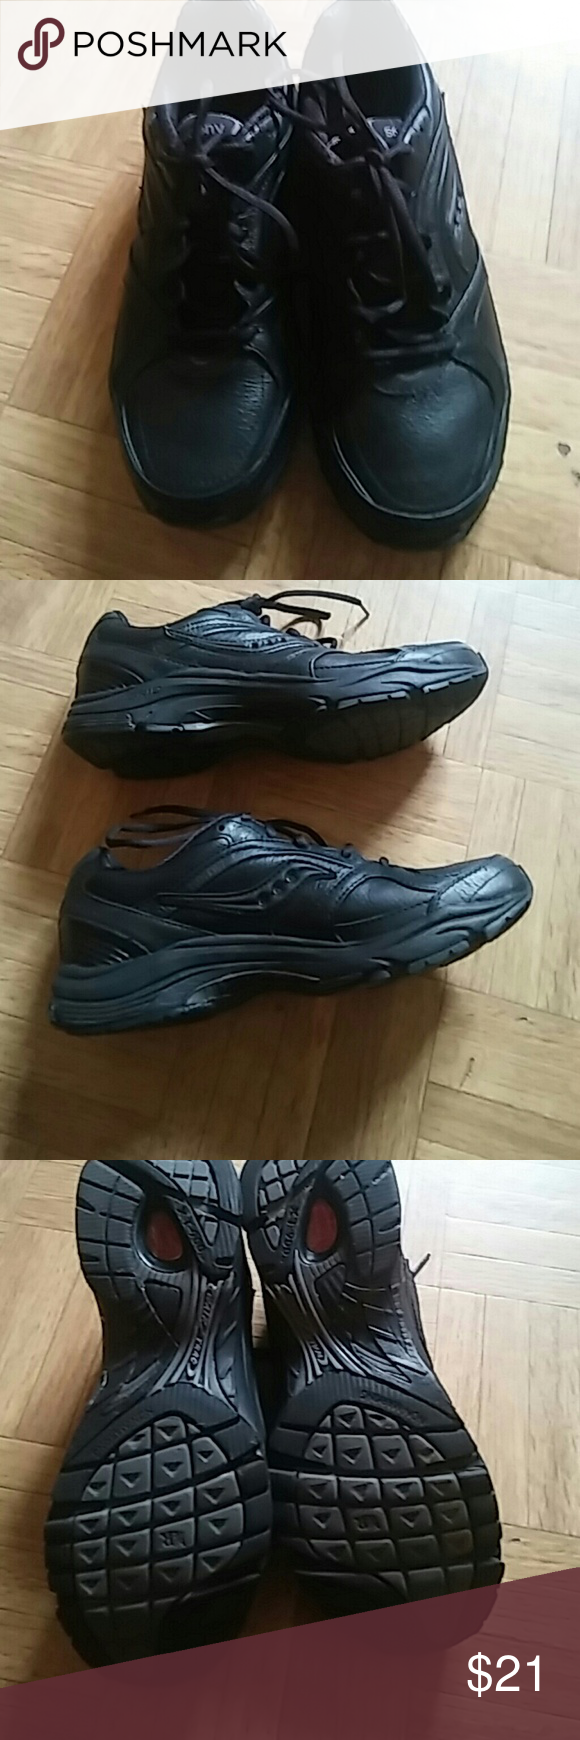 Brand New Saucony XT-900 Brand new never wore Black sneakers Saucony Shoes Athletic Shoes